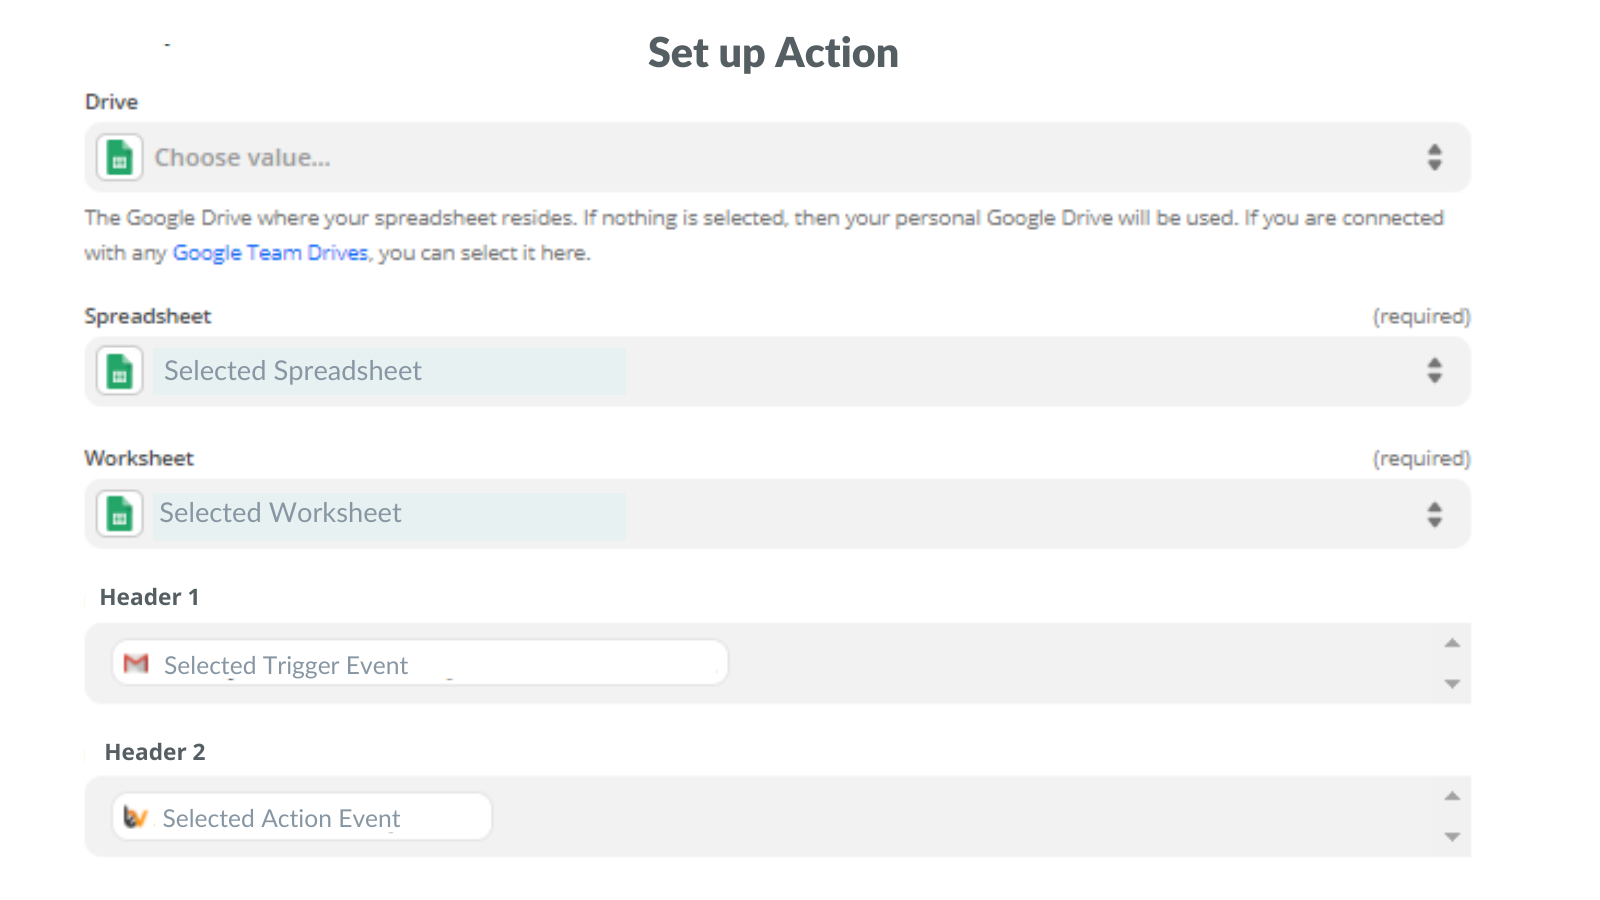 Set up Action